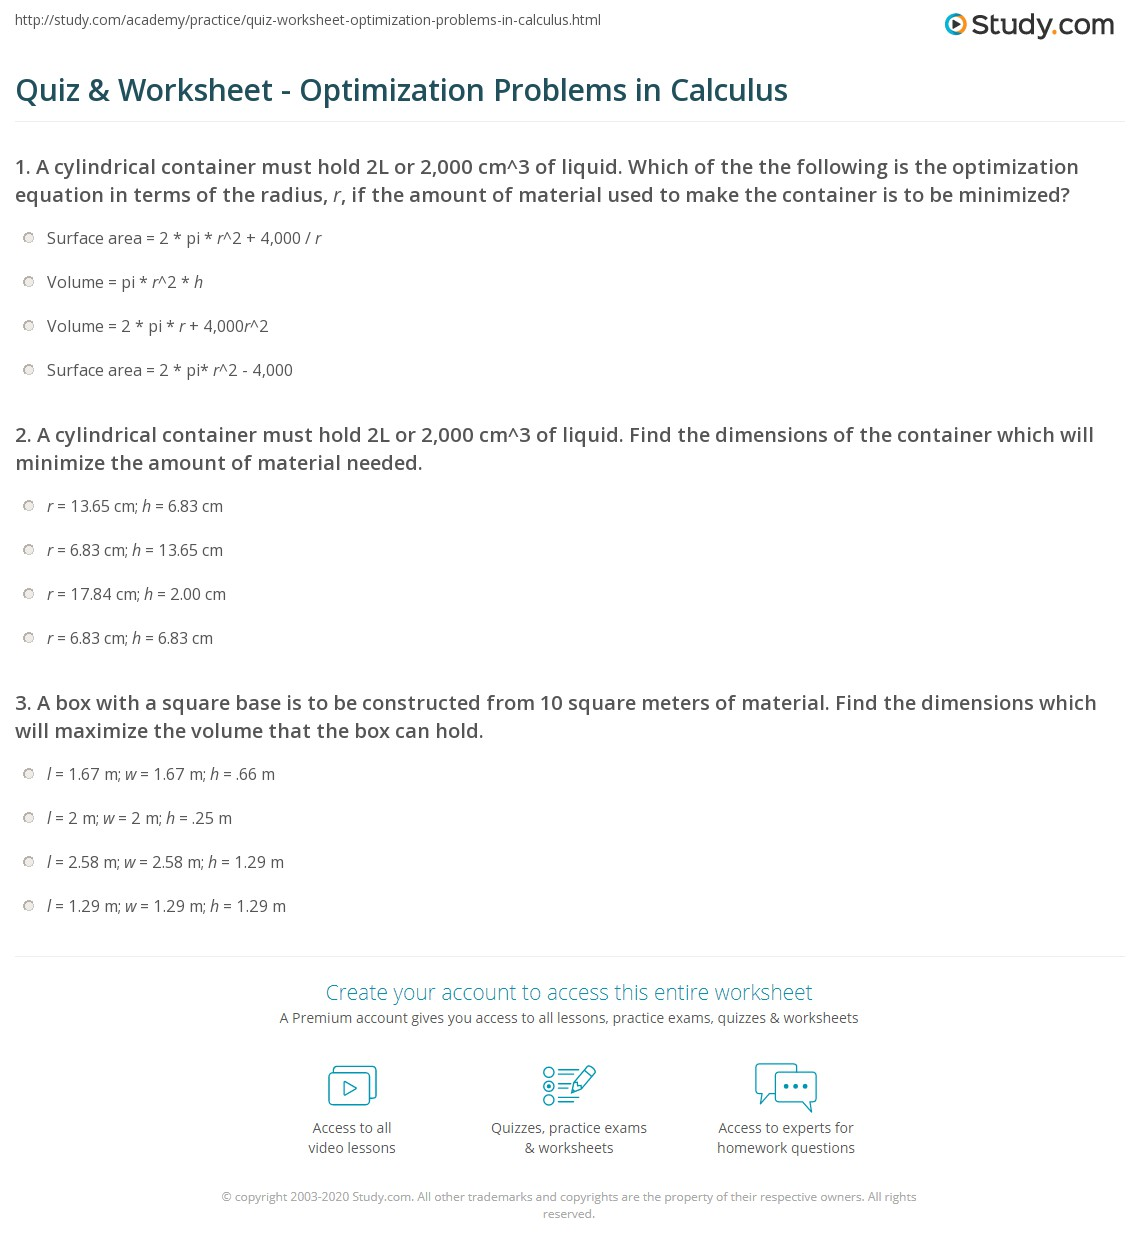 Worksheets Application Of Optimization  Work Sheet With Solution quiz worksheet optimization problems in calculus study com print examples explanation worksheet